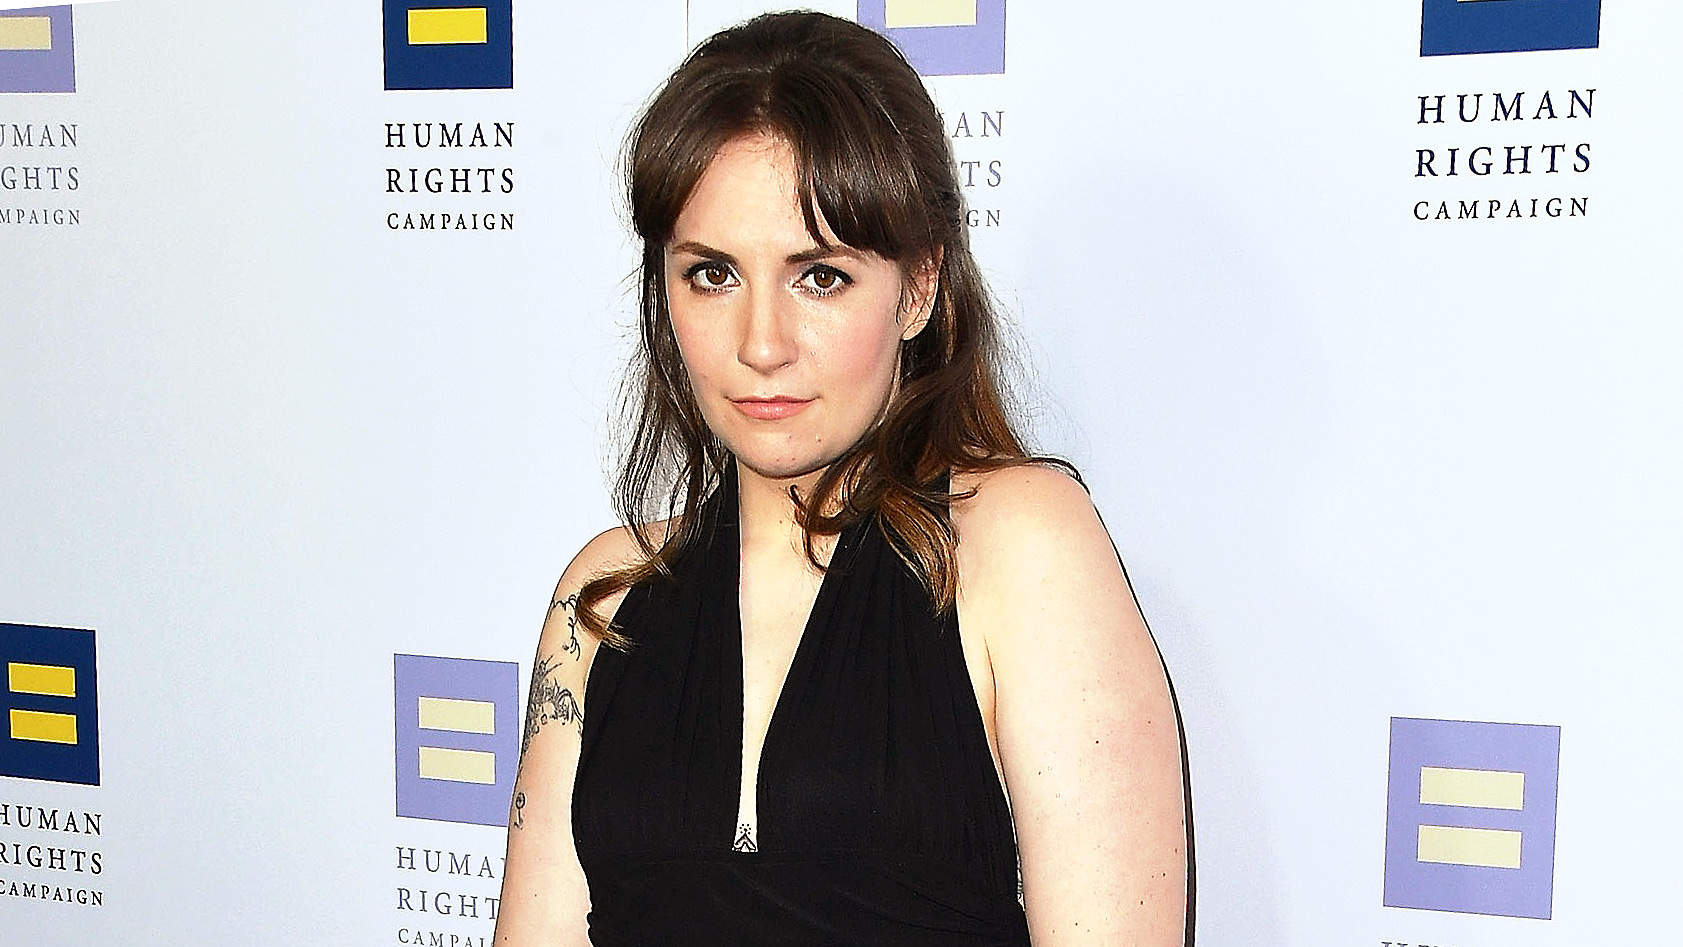 Lena Dunham Cancels Lenny Tour: 'I'm in the Greatest Amount of Physical Pain That I Have Ever Experienced'